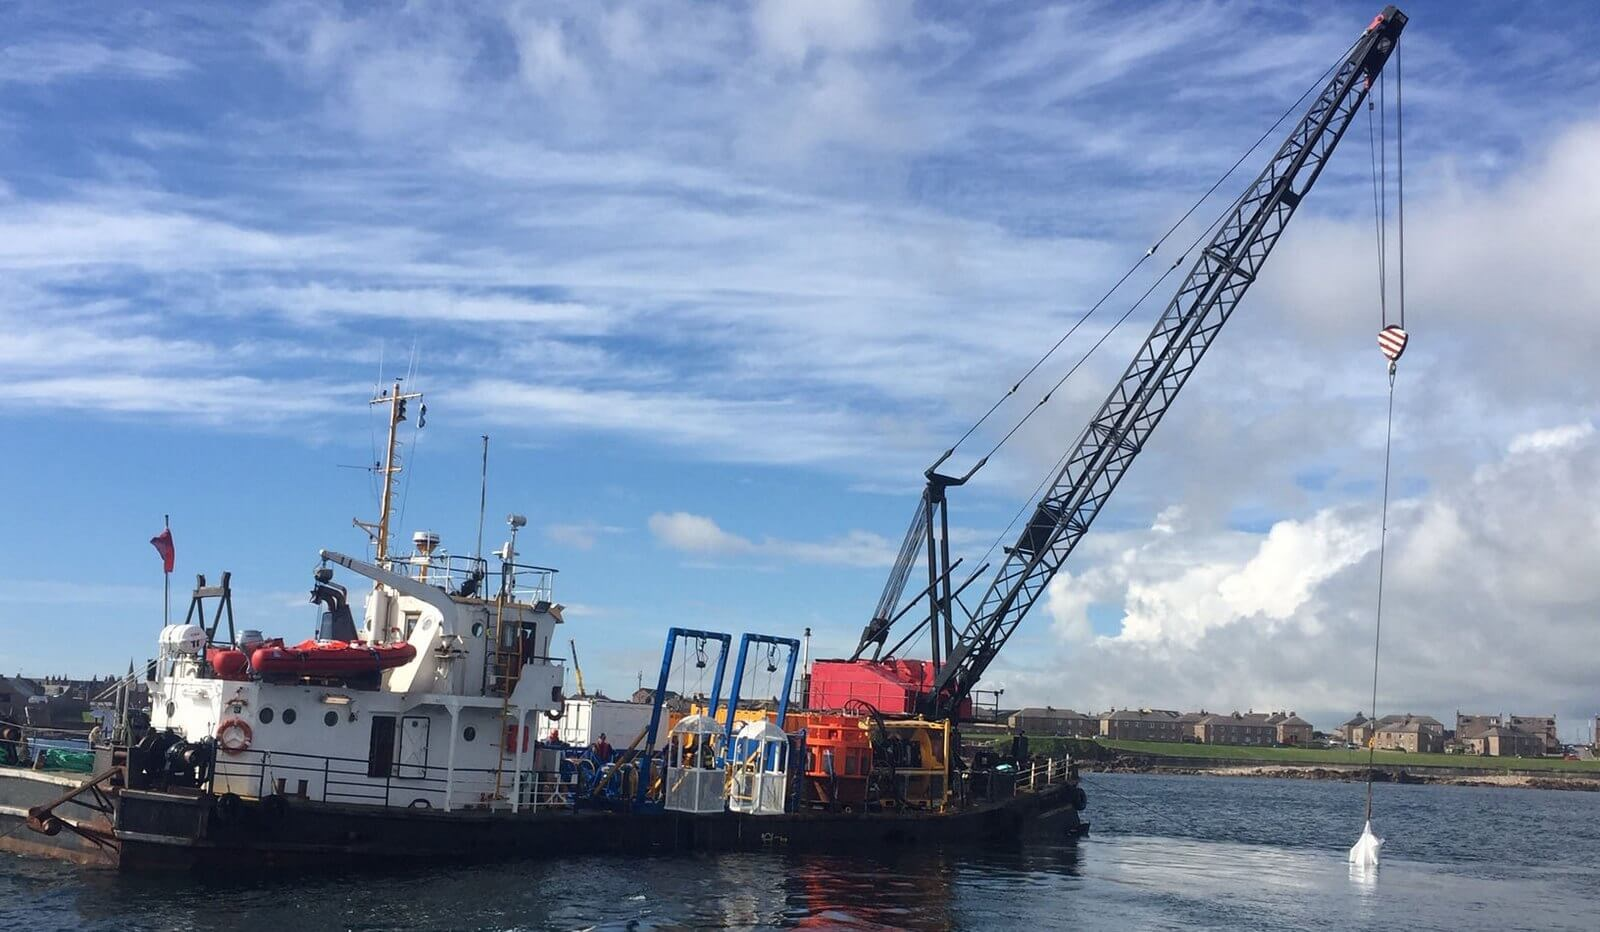 Self-propelled crane barge for sale 06641 (5)